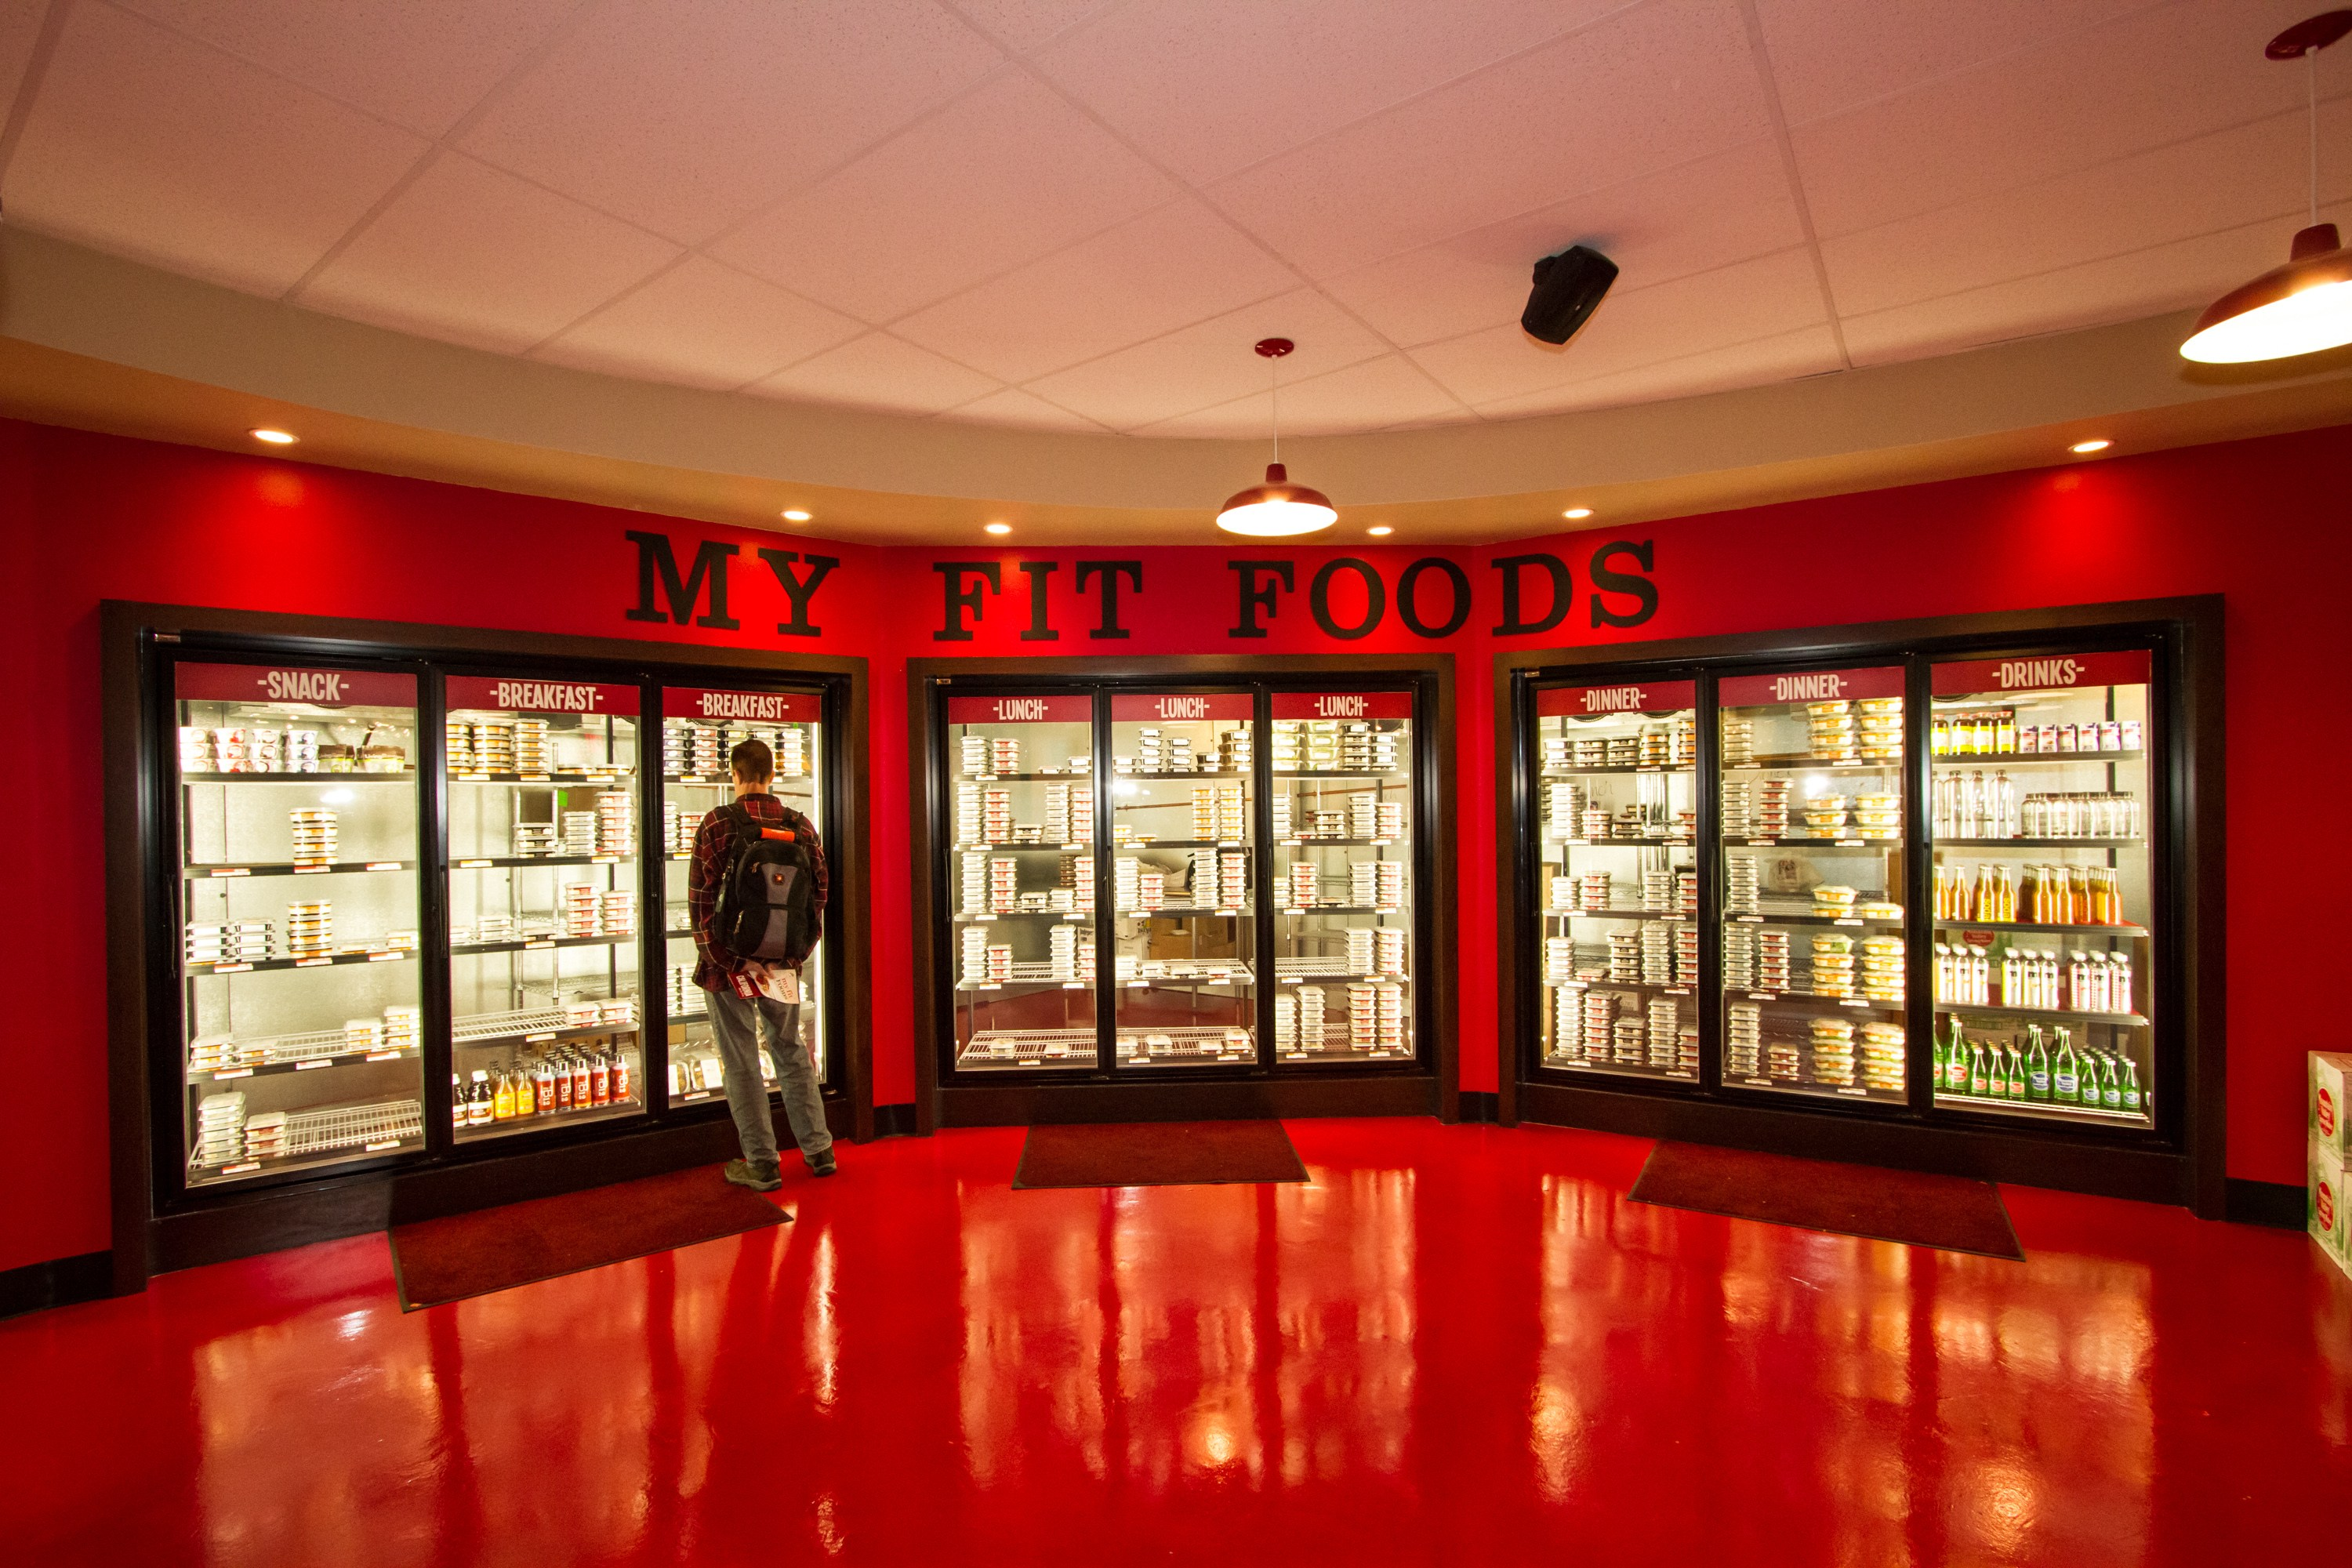 My Fit Foods Expands In Houston Texas With A New Retail